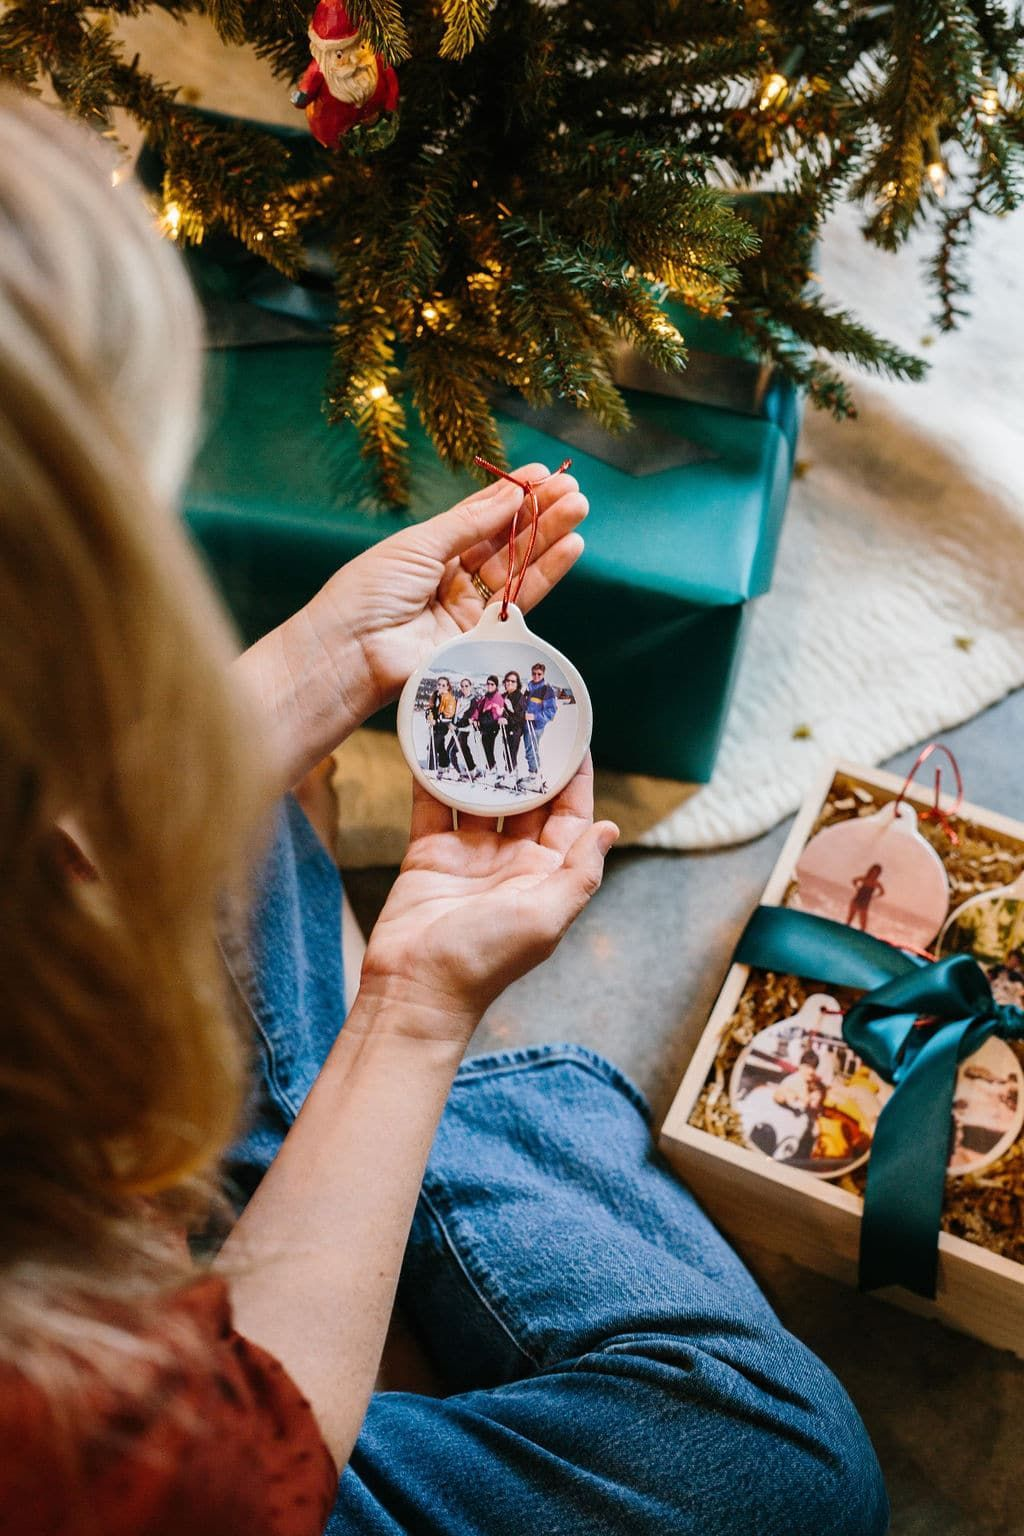 How to DIY Custom Family Photo Ornaments this Holiday